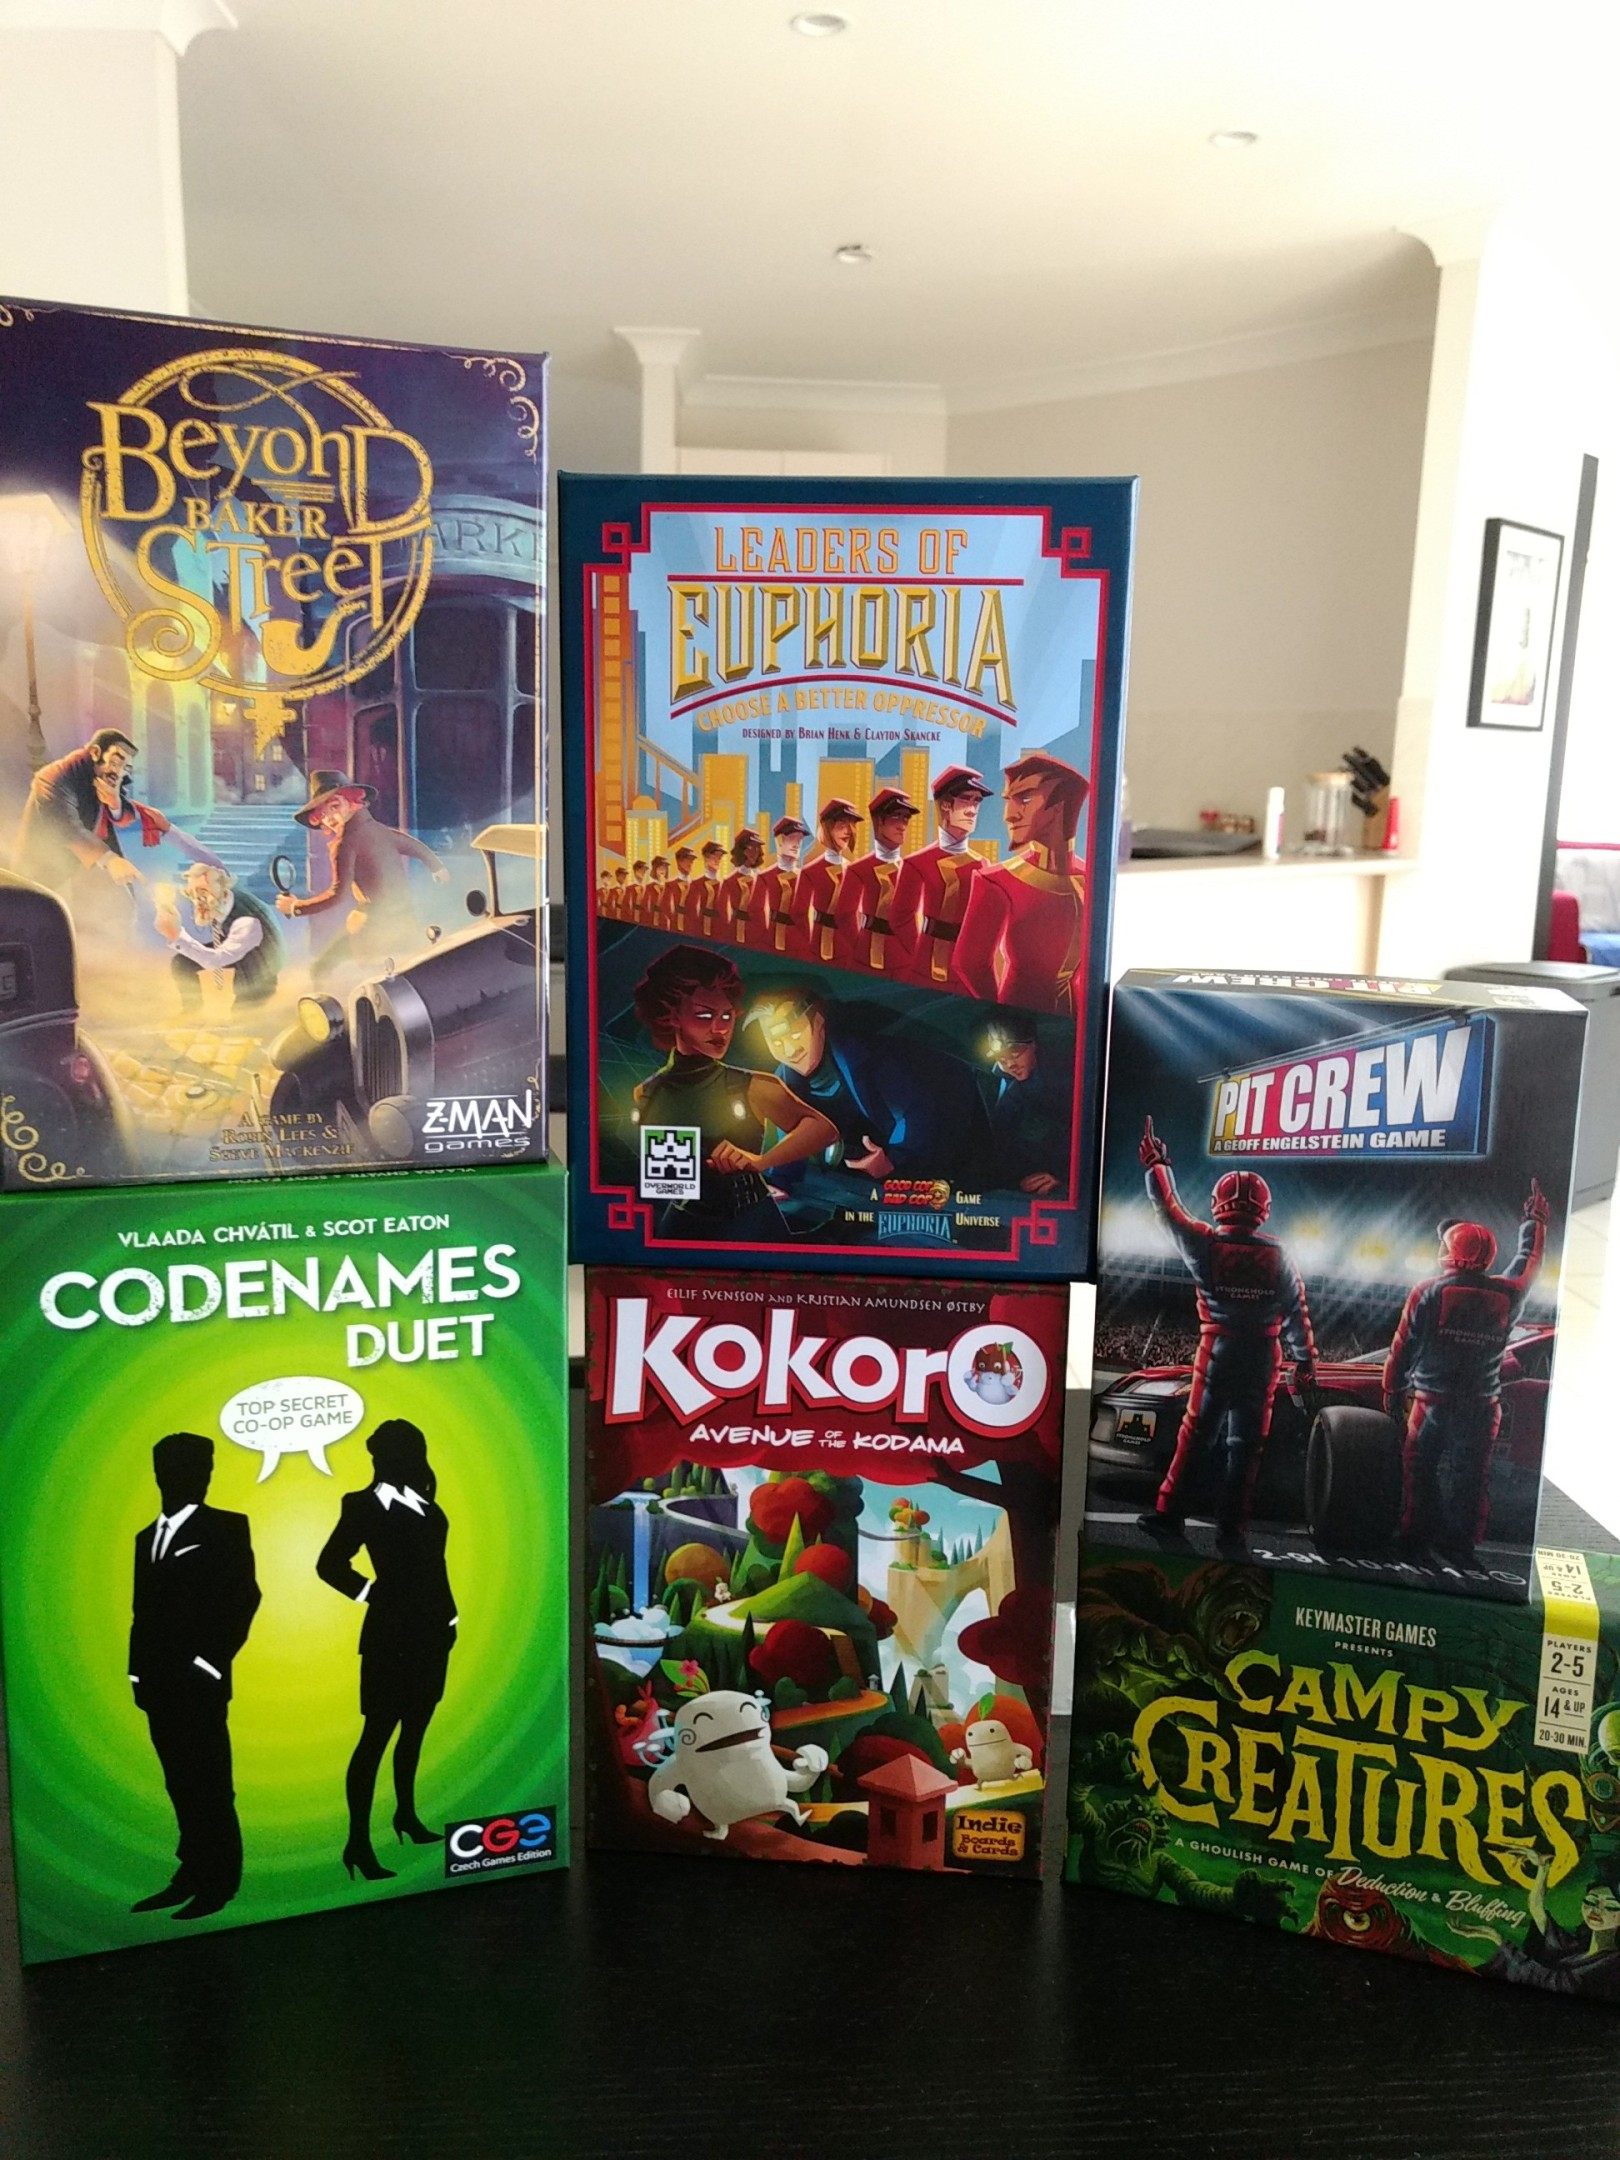 Stack of board games, Beyond Baker Street, Leaders of Euphoria, Codenames Duet, Kokoro, Pit Crew, and Campy Creatures